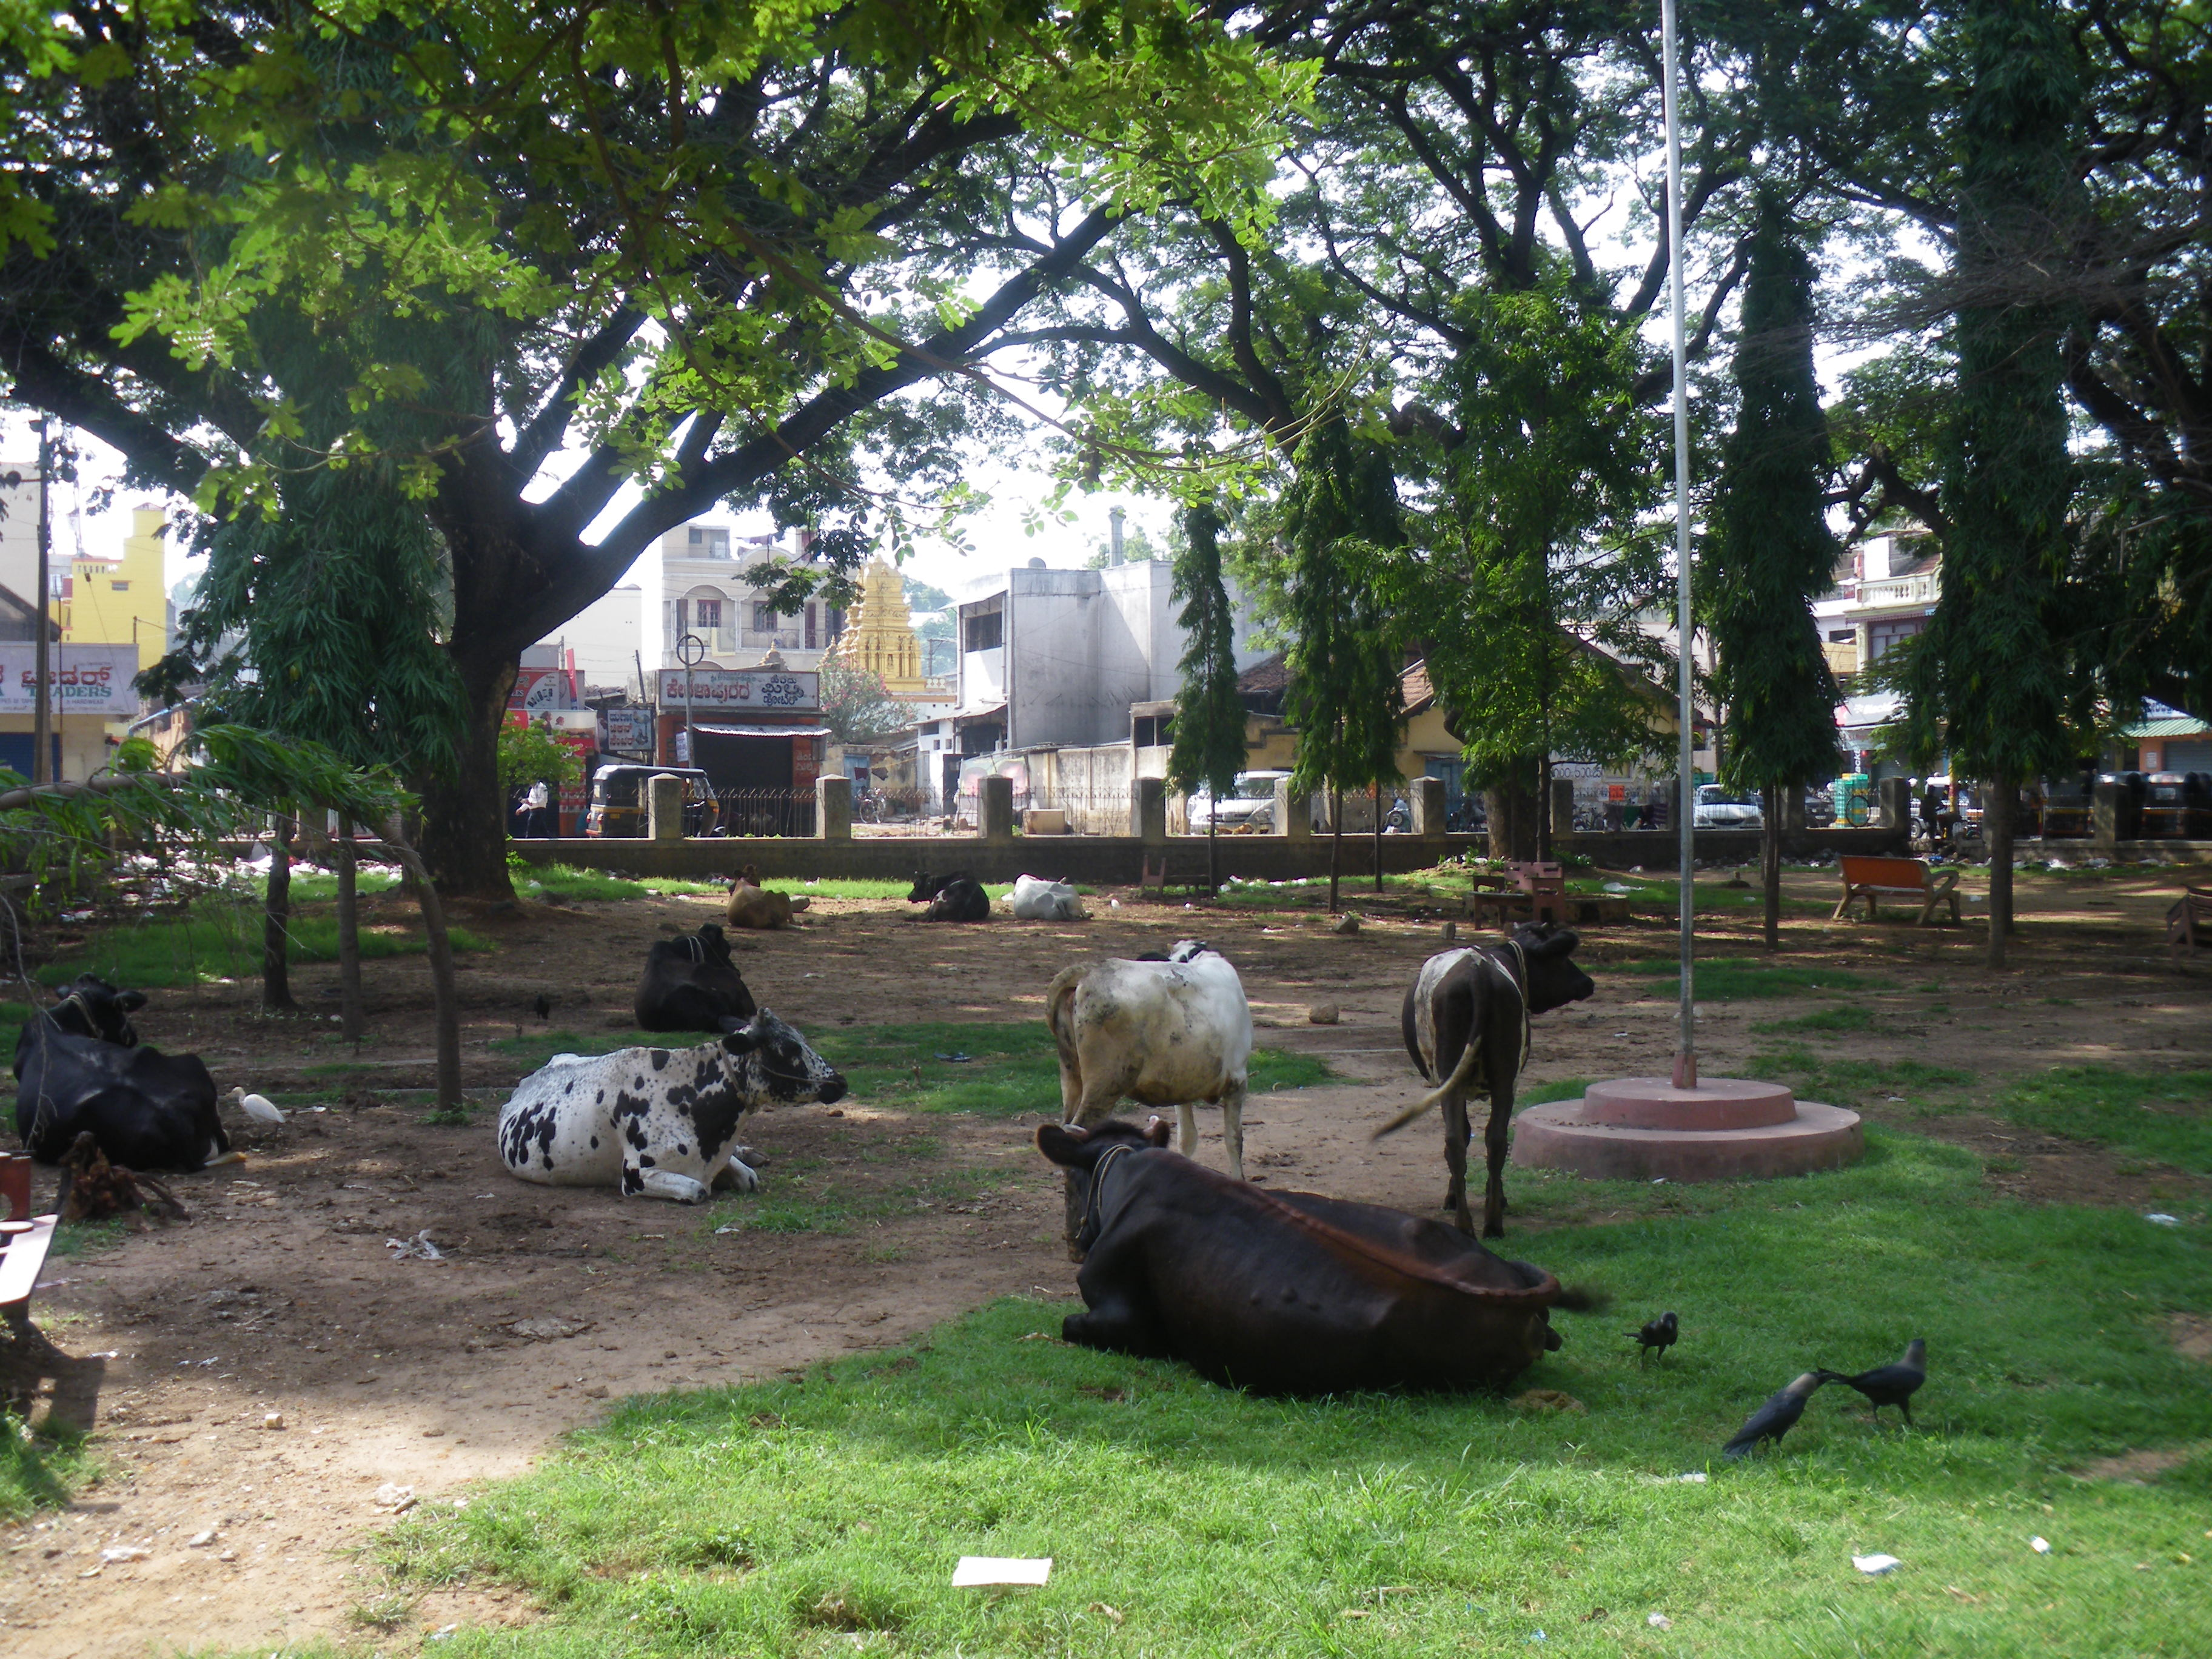 thesis on agriculture and rural development